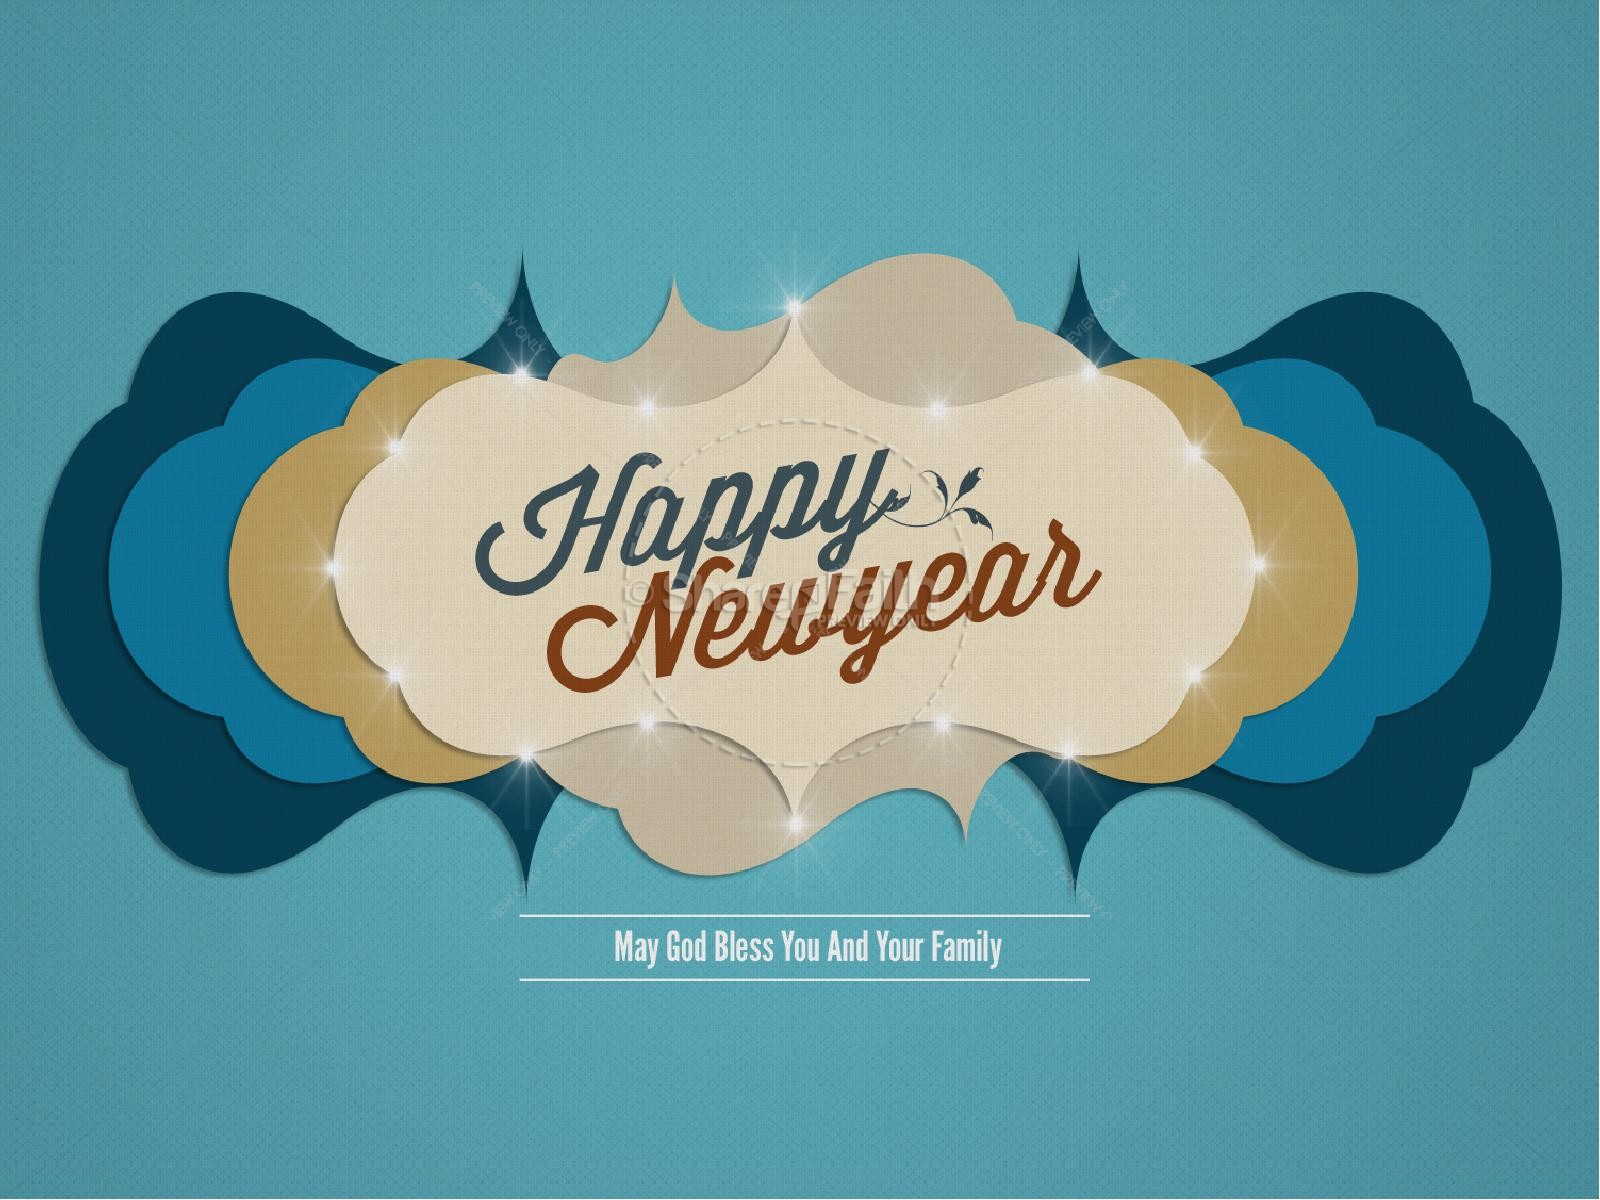 contemporary happy newyear powerpoint template | church new year, Powerpoint templates